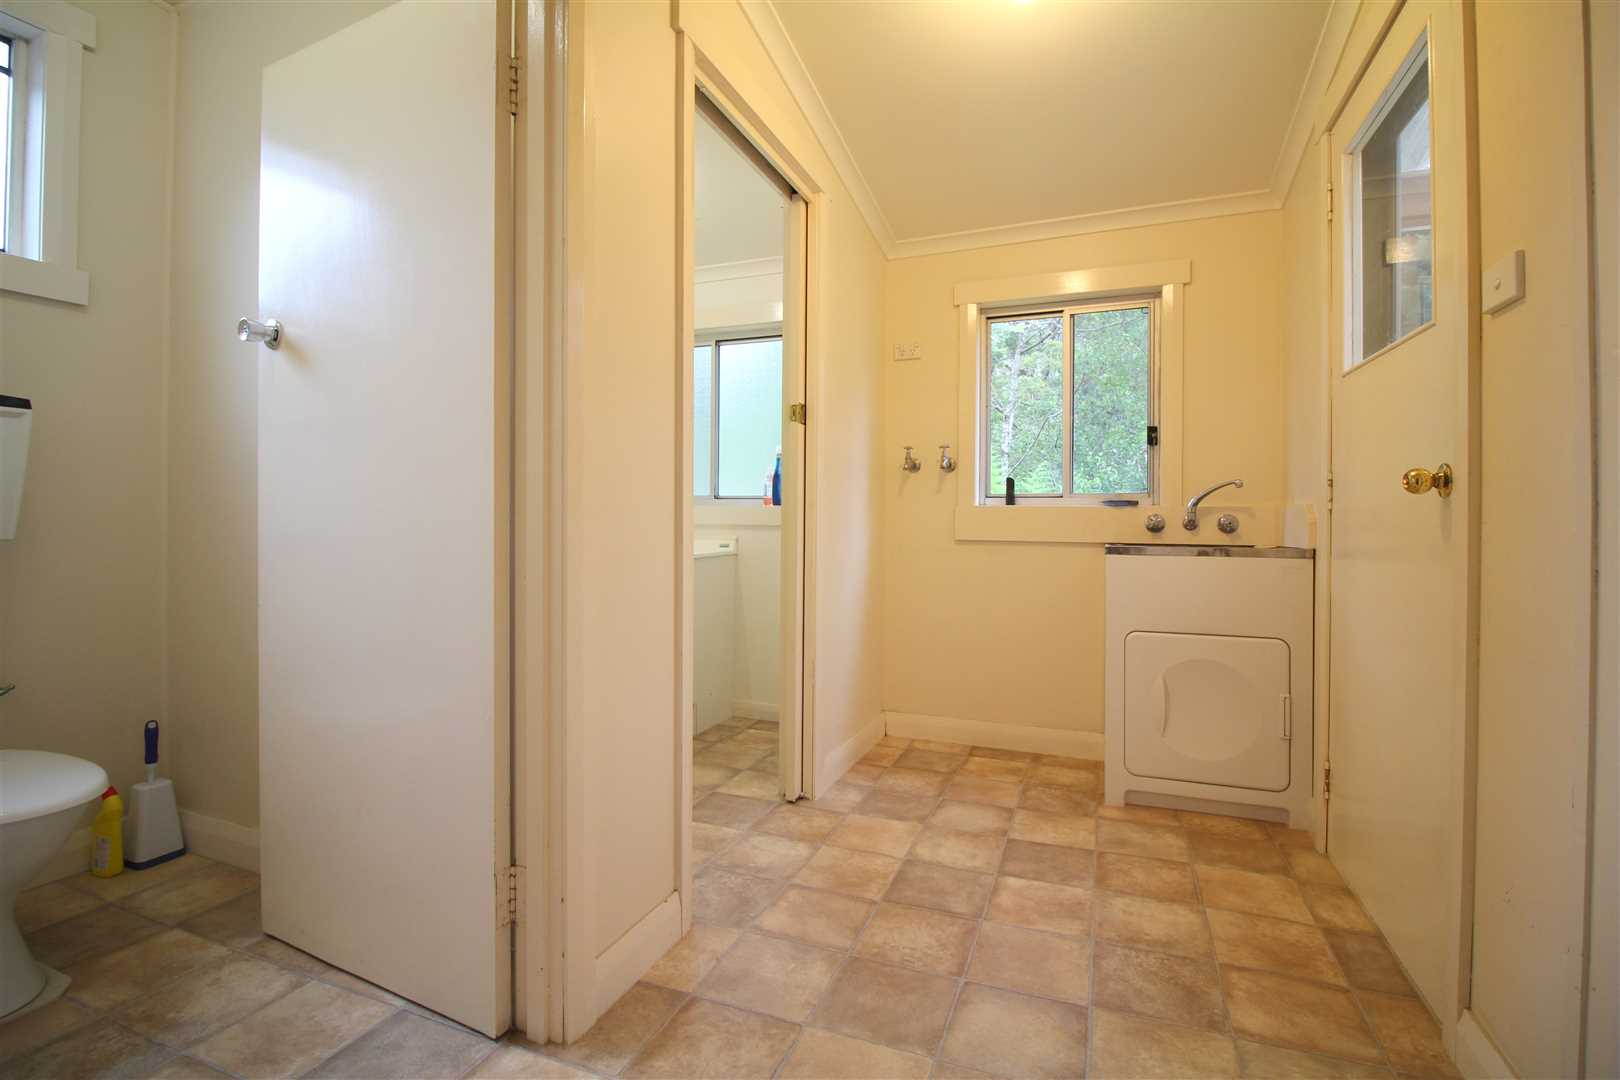 Laundry/Toilet/Bathroom/Exit To Back Of Property